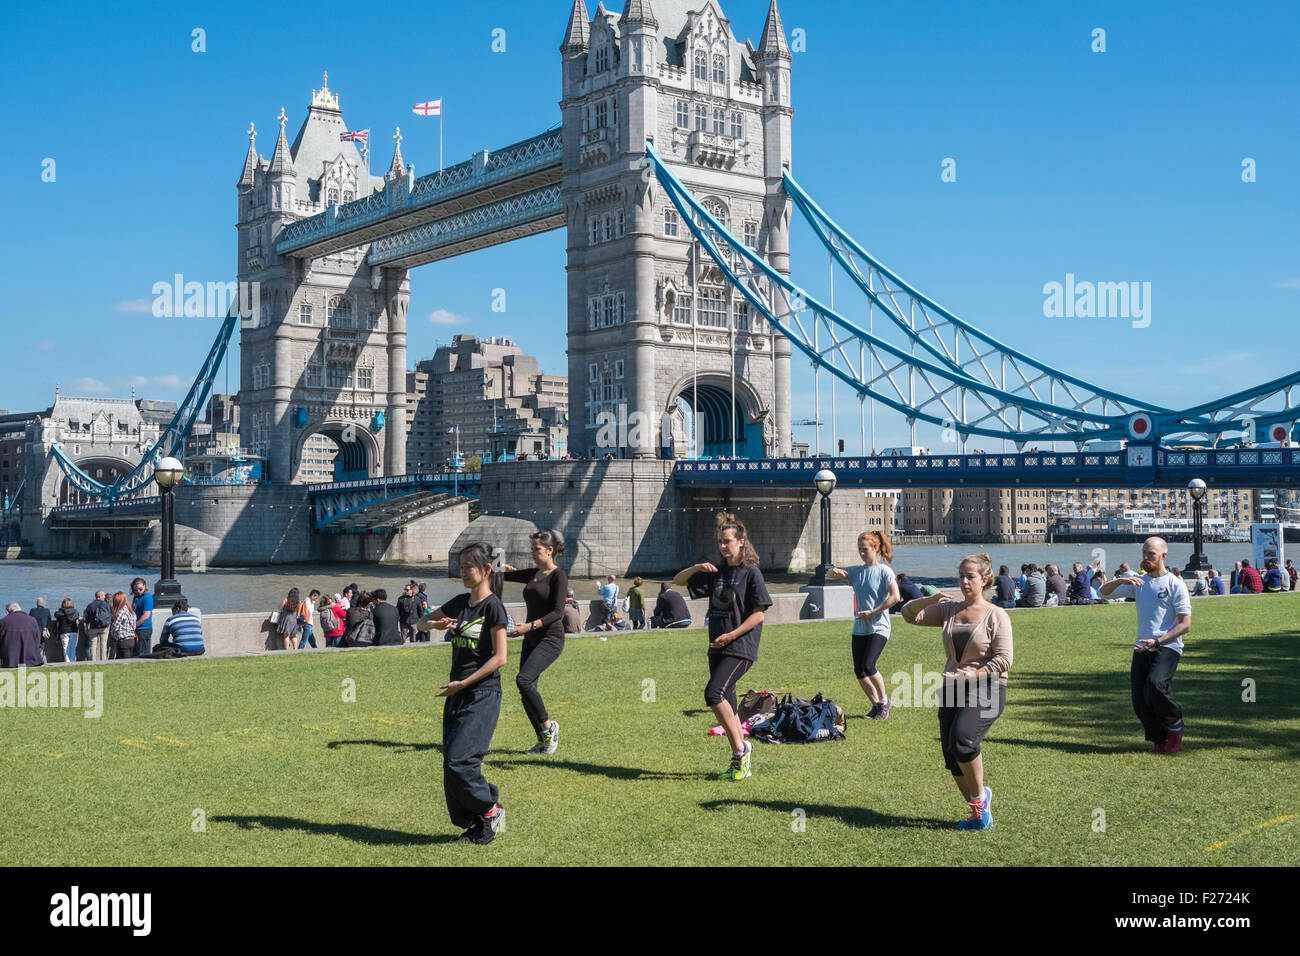 People practising Tai Chi movements near iconic landmank Tower Bridge, London, England UK - Stock Image